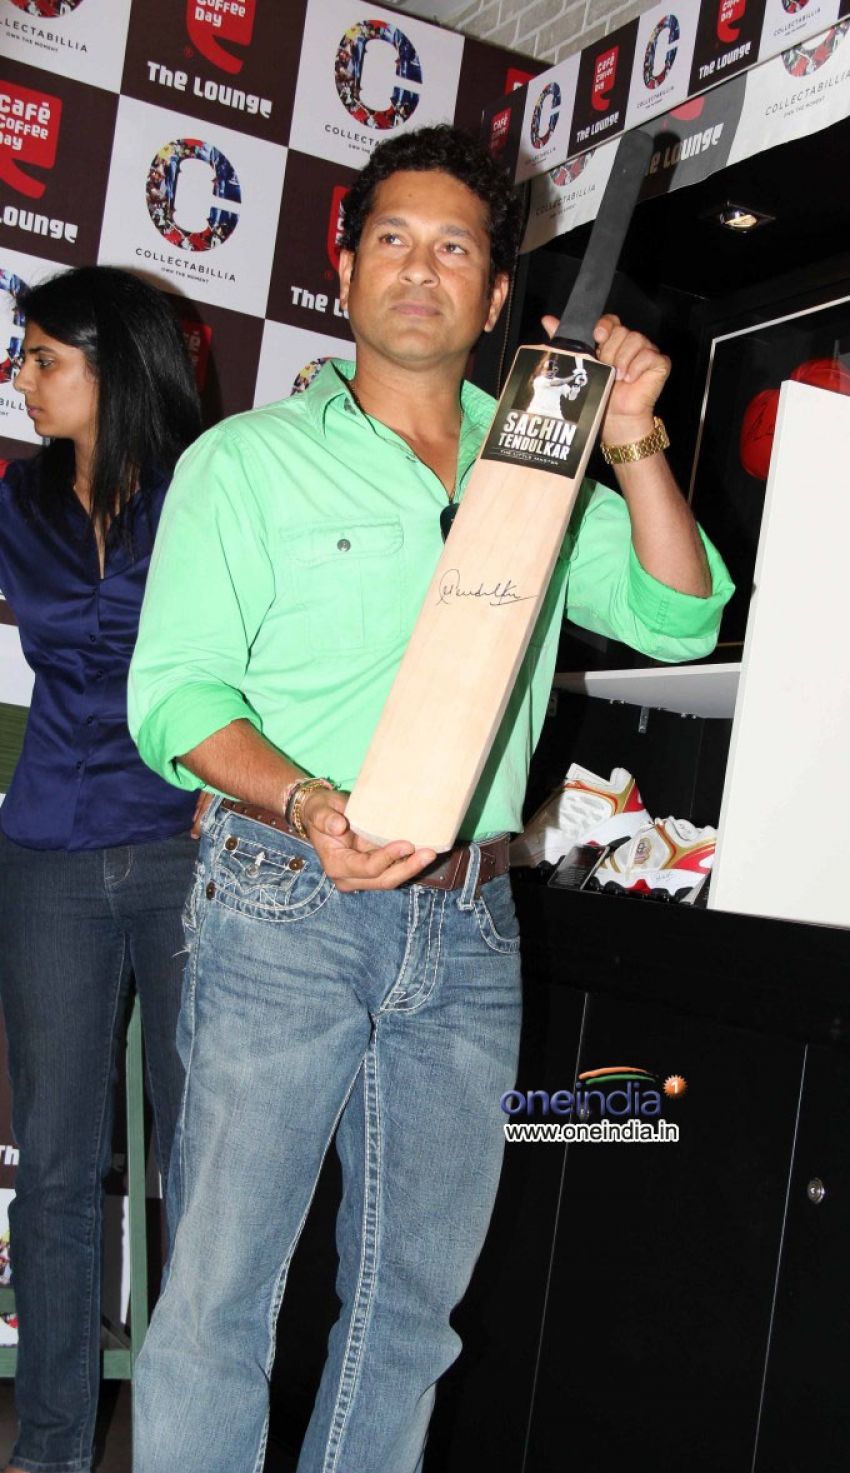 Sachin Tendulkar at the promotion of Cafe Coffee Day Photos